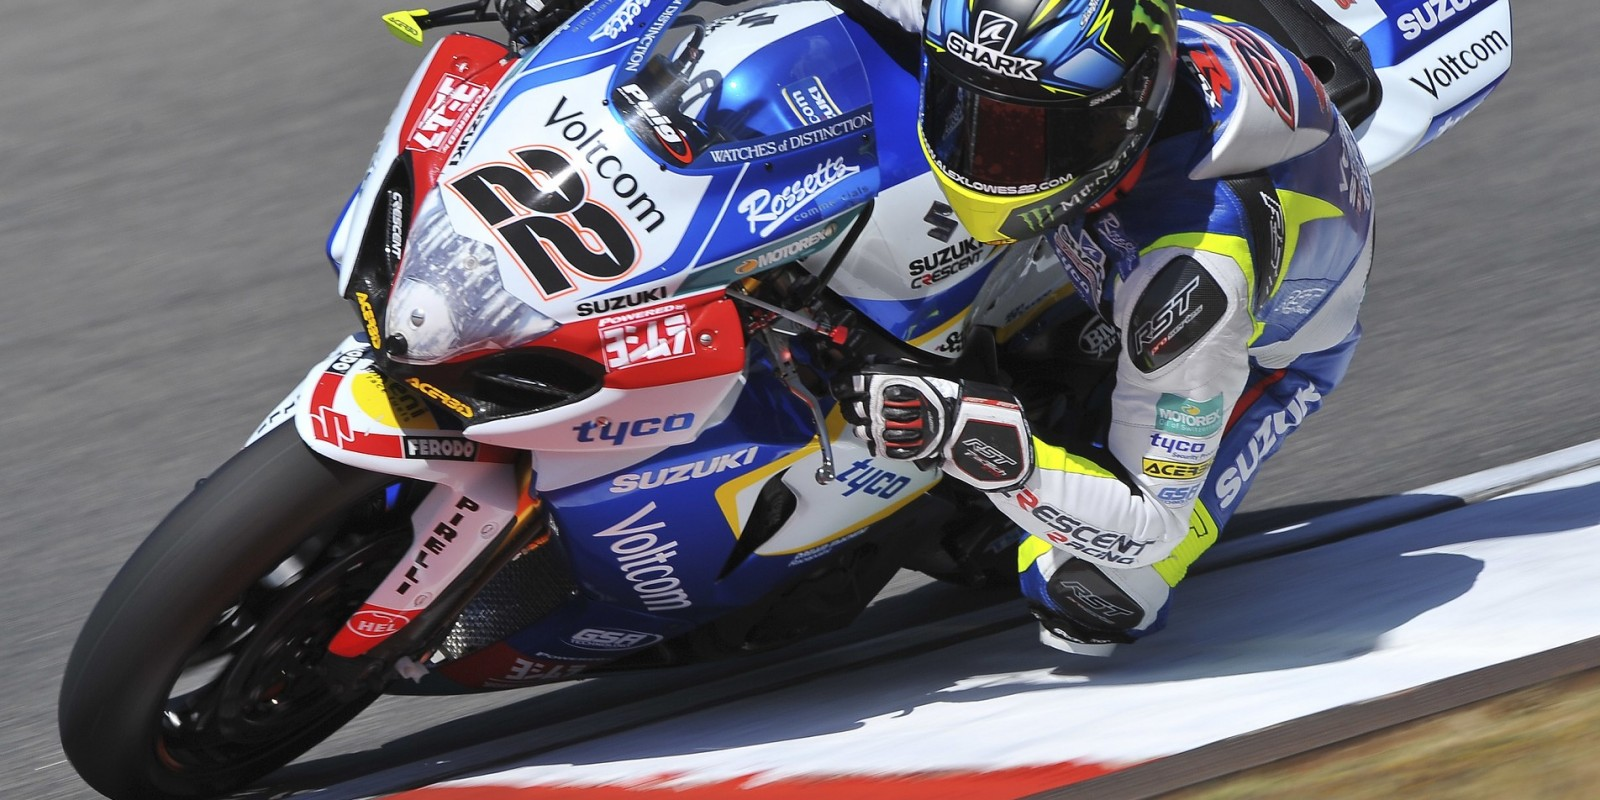 Images of WSB racer Alex Lowes from Round 7 2015